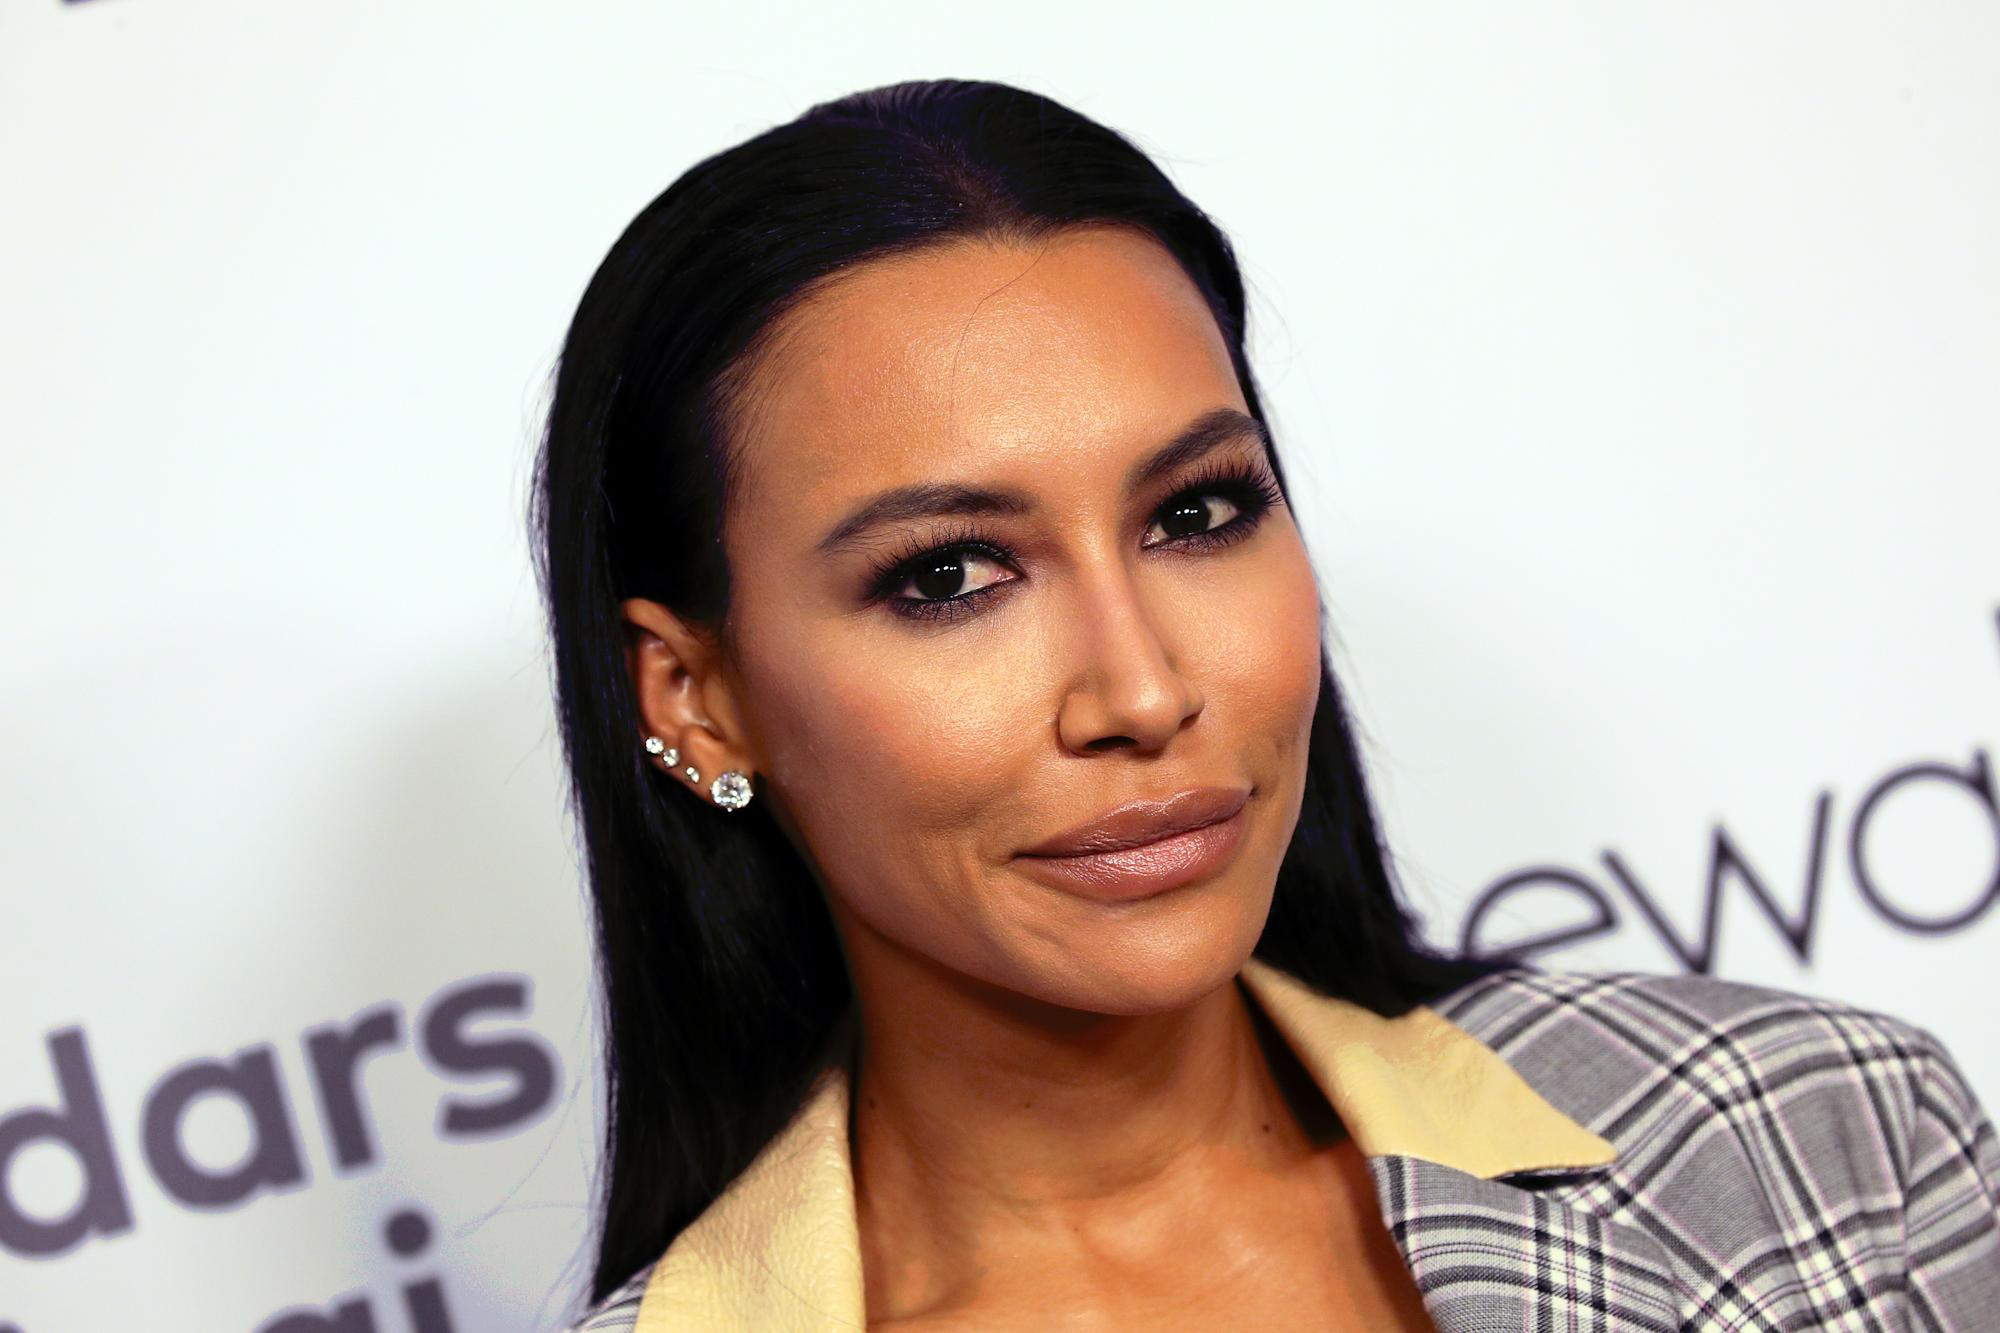 Ryan Dorsey tells Naya Rivera their son Josey is 'doing OK' in poignant message marking anniversary of her funeral